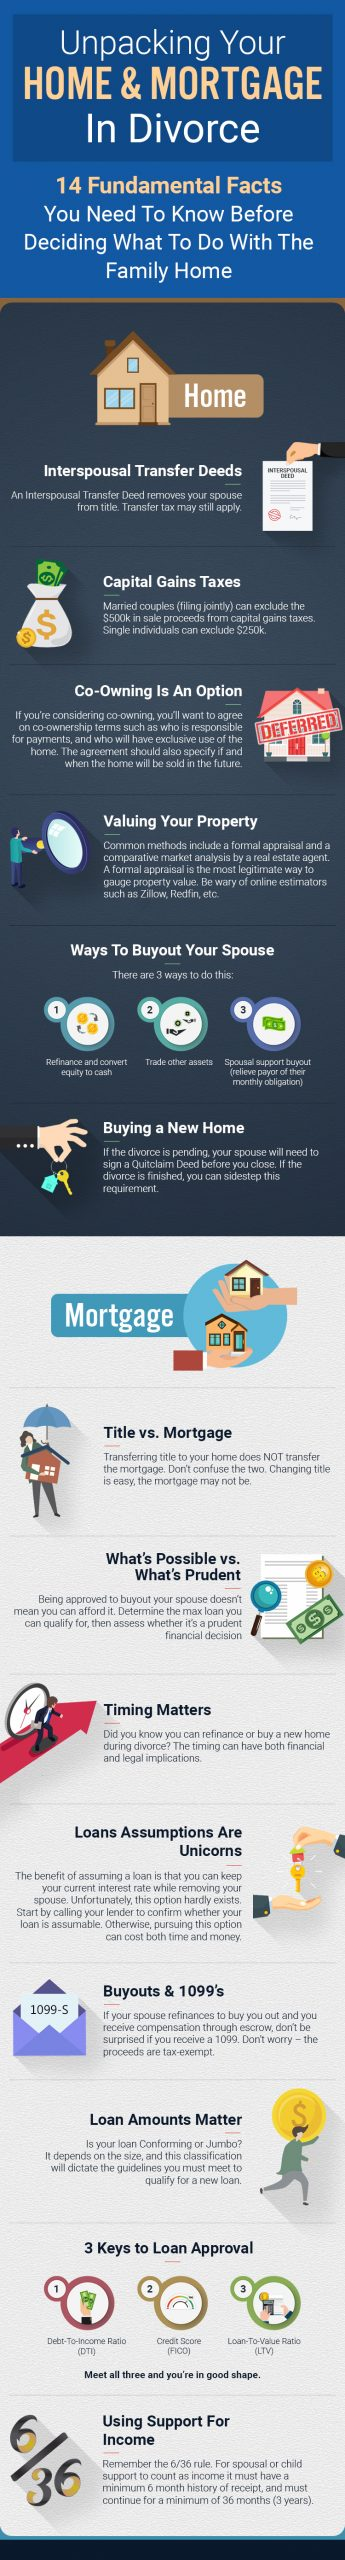 Guide To Your Home And Mortgage In Divorce 2021 Survive Divorce